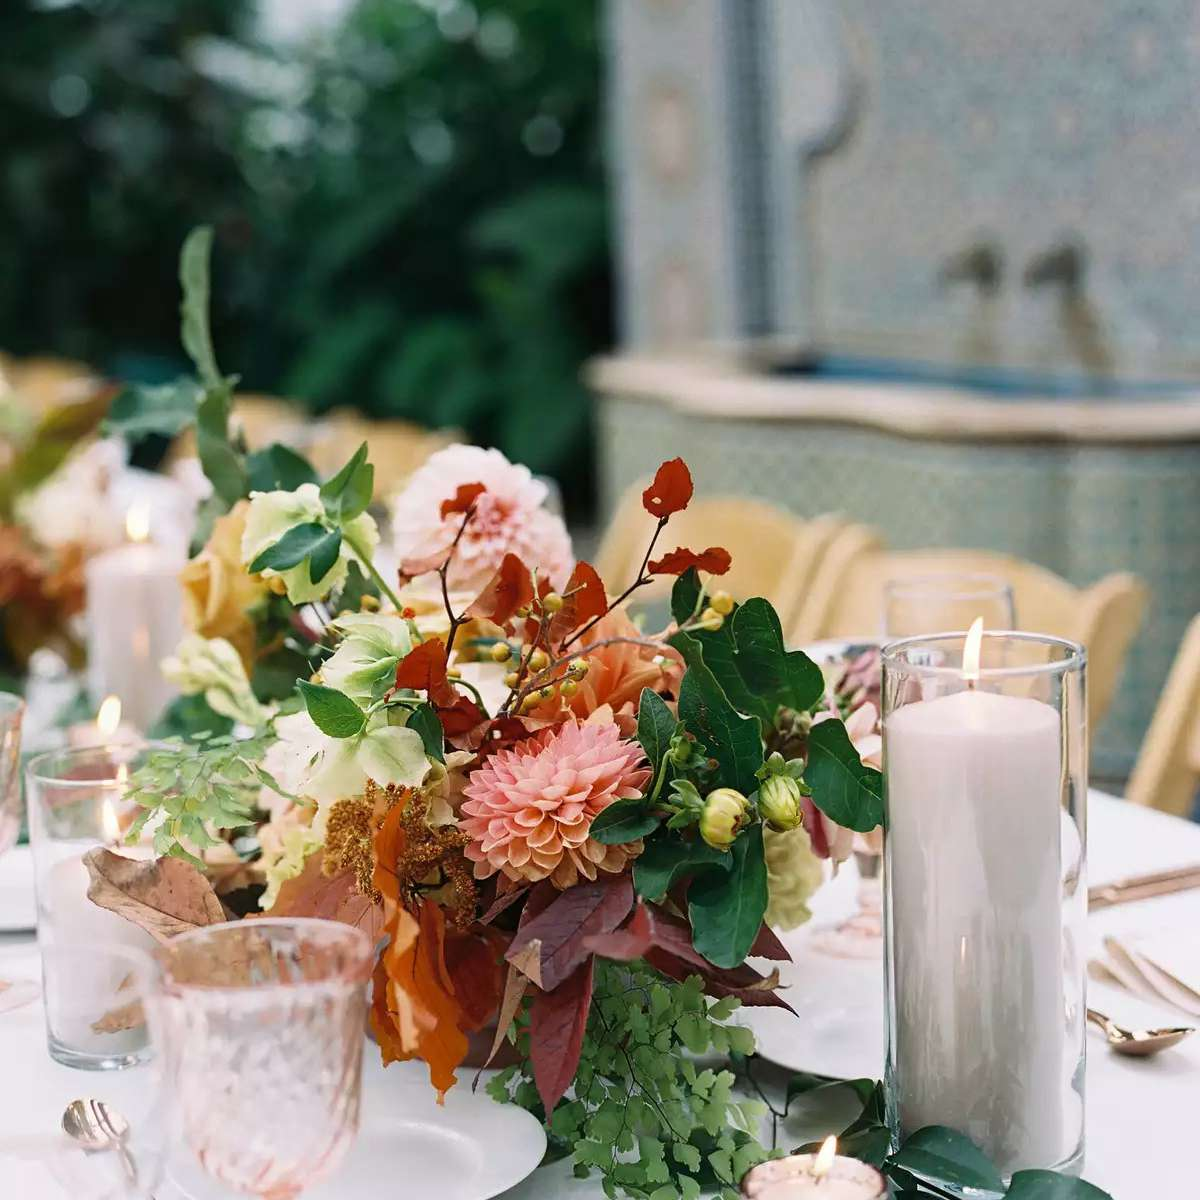 Autumnal arrangements with copper flatware and pillar candles